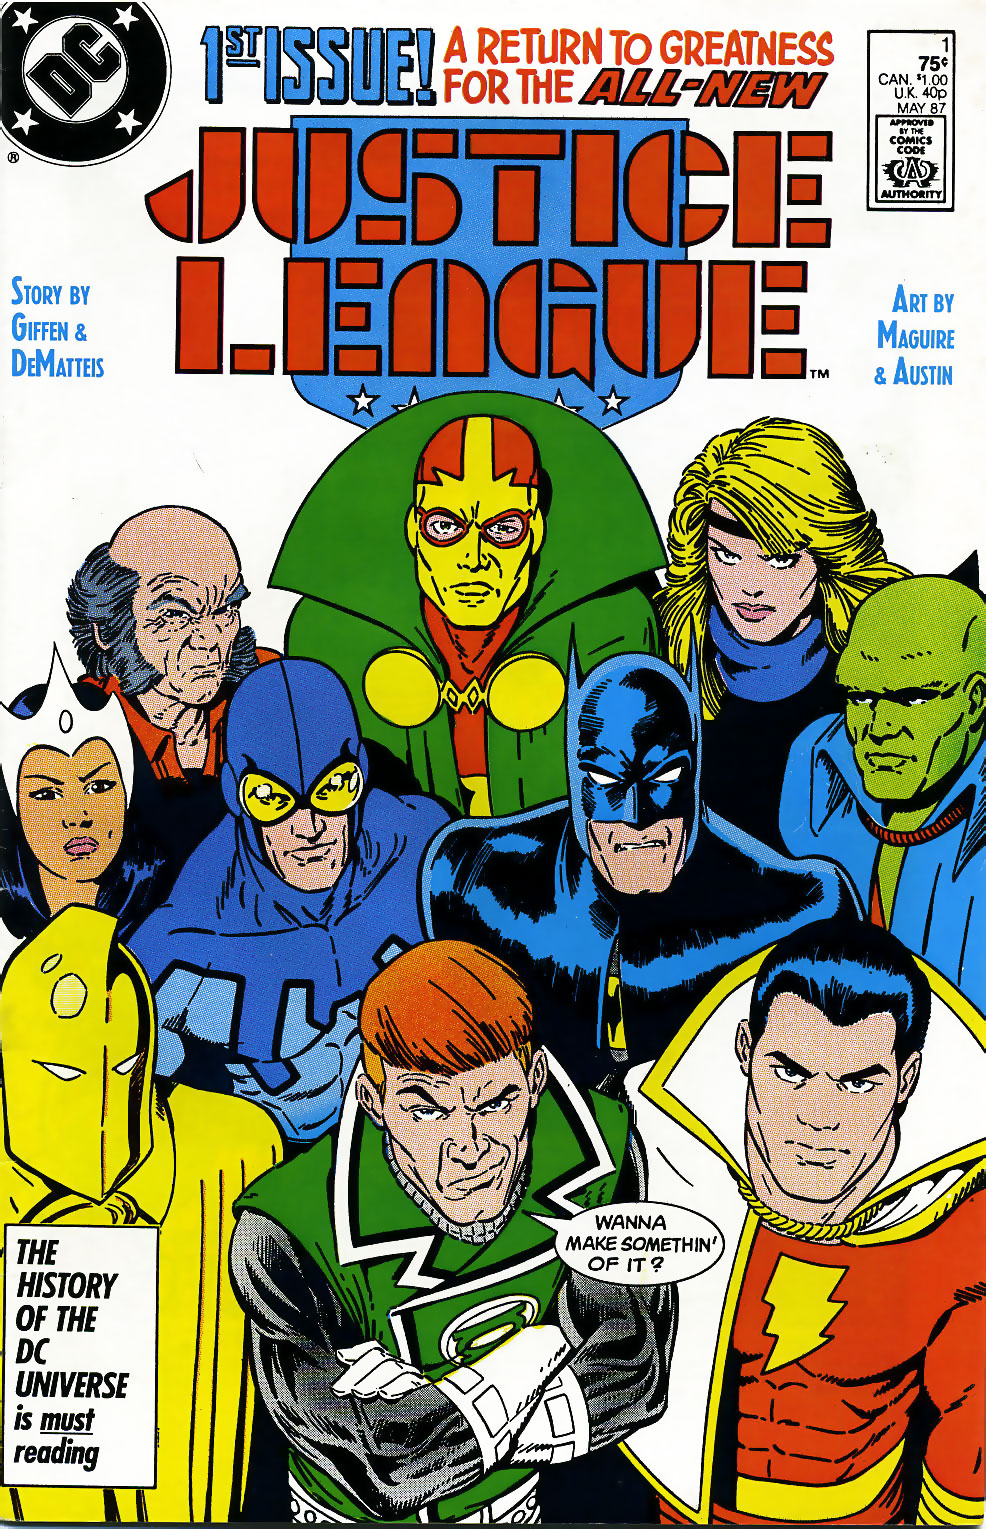 Justice League #1 cover by Kevin Maguire and Terry Austin